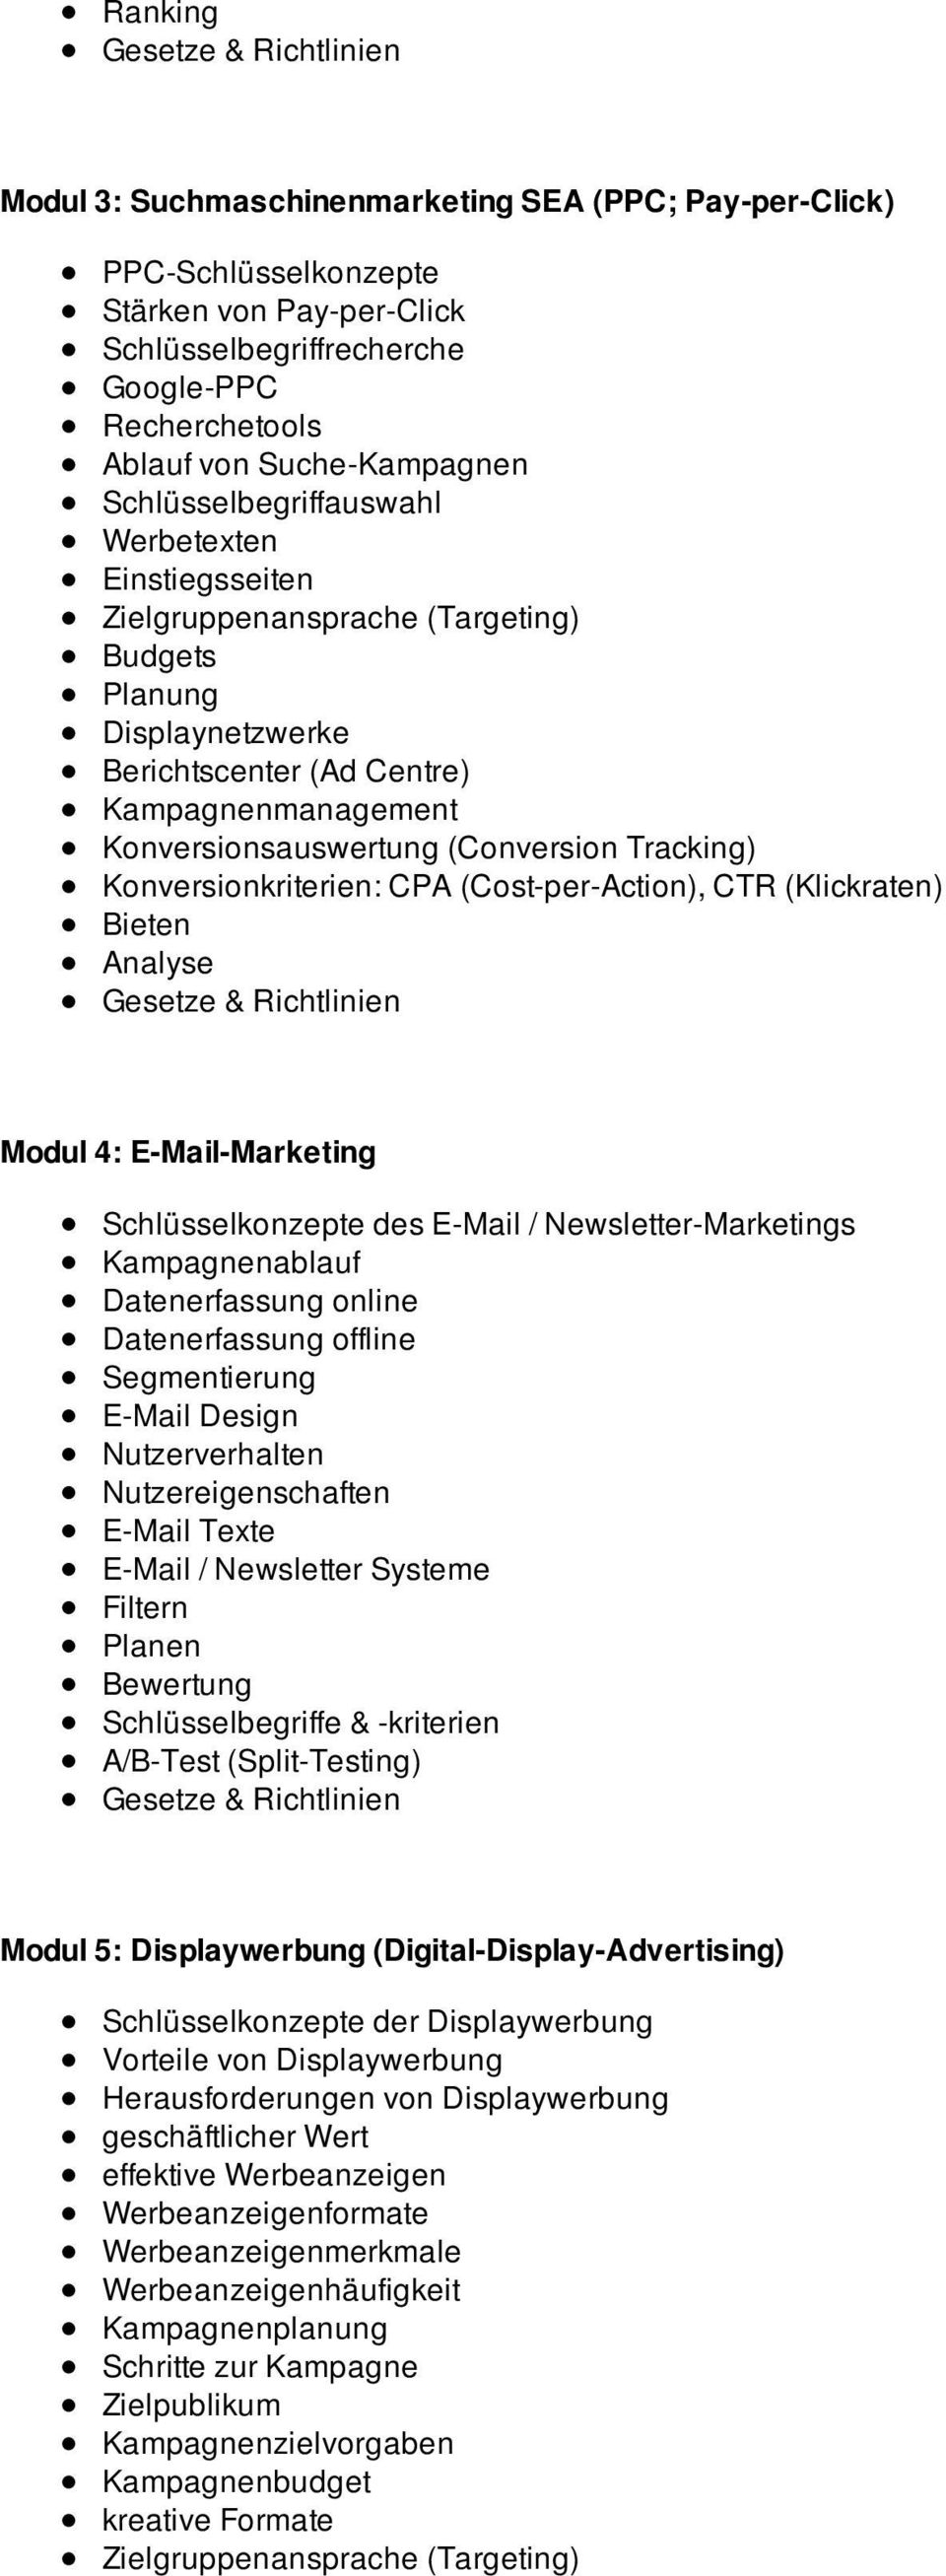 Tracking) Konversionkriterien: CPA (Cost-per-Action), CTR (Klickraten) Bieten Analyse Modul 4: E-Mail-Marketing Schlüsselkonzepte des E-Mail / Newsletter-Marketings Kampagnenablauf Datenerfassung